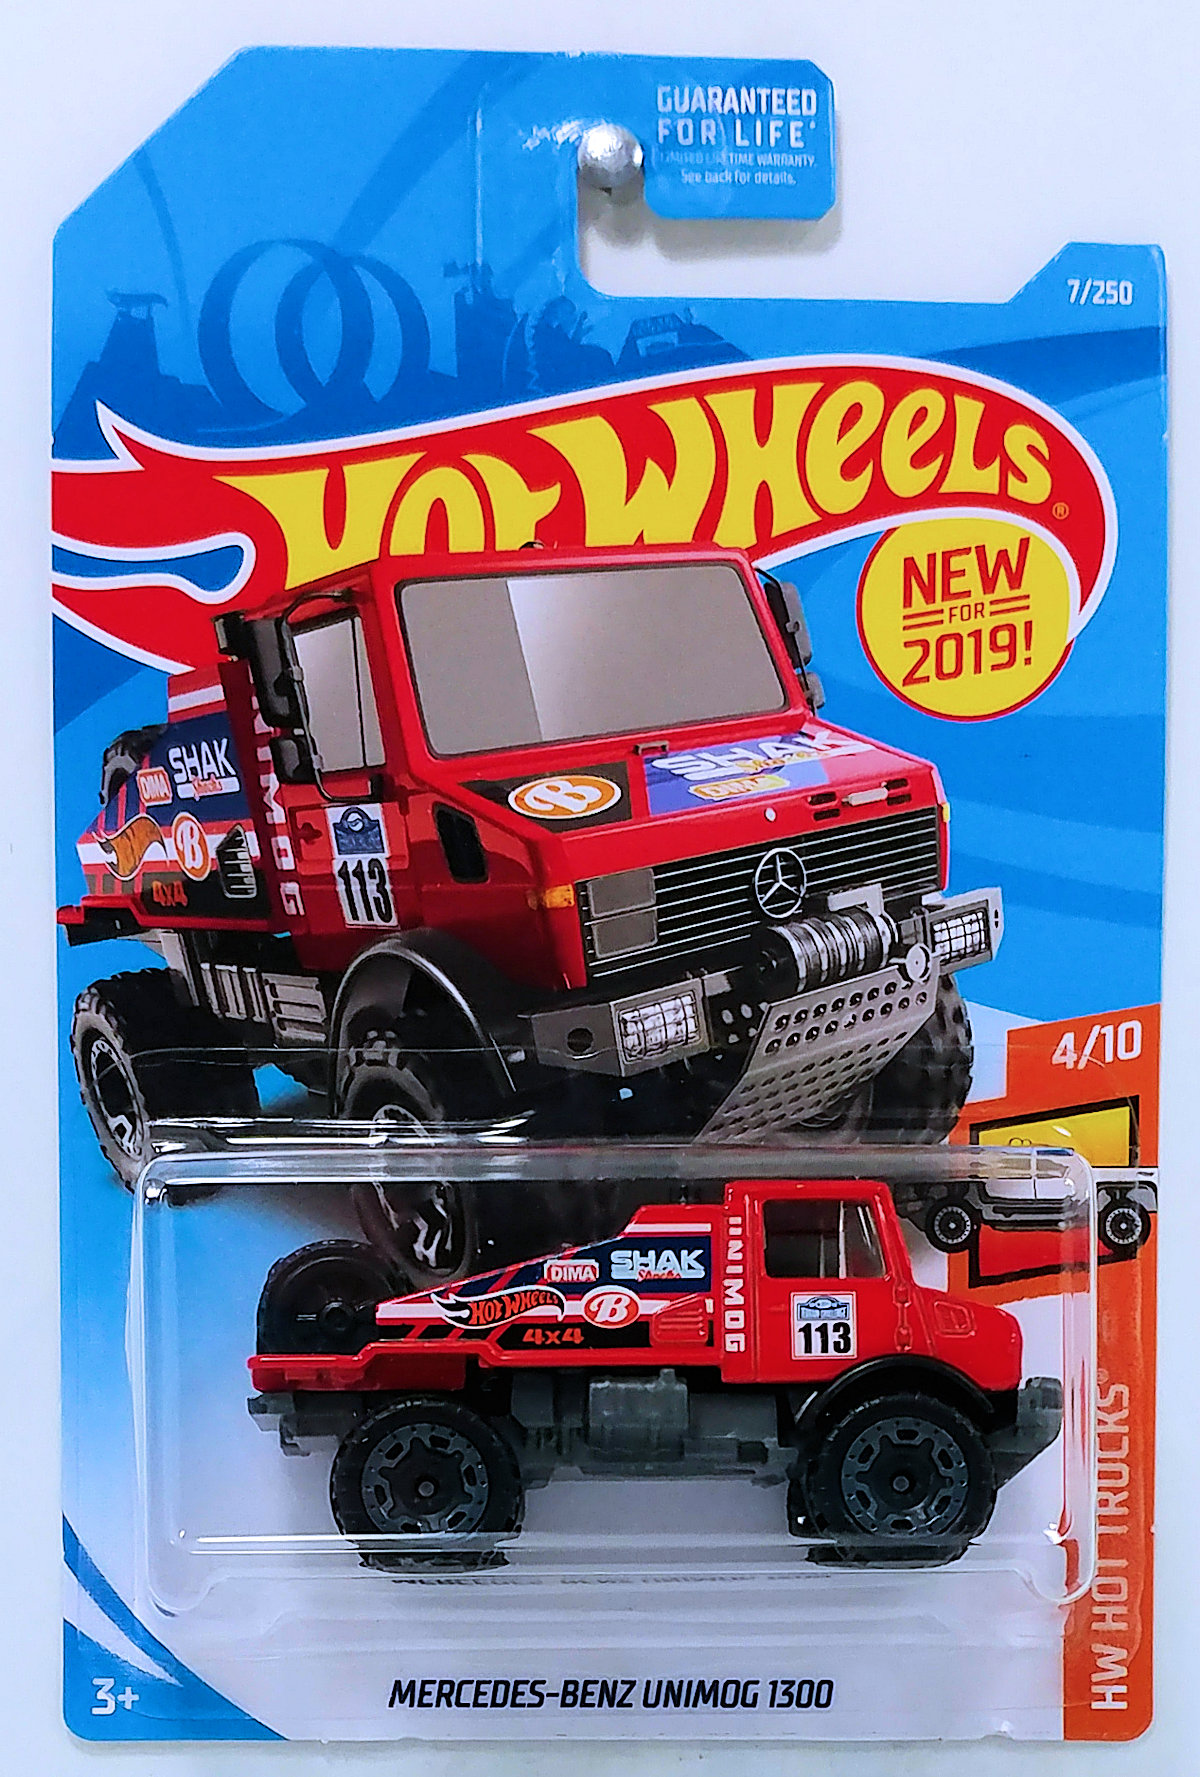 Mercedes-Benz Unimog 1300 | Model Trucks | hobbyDB